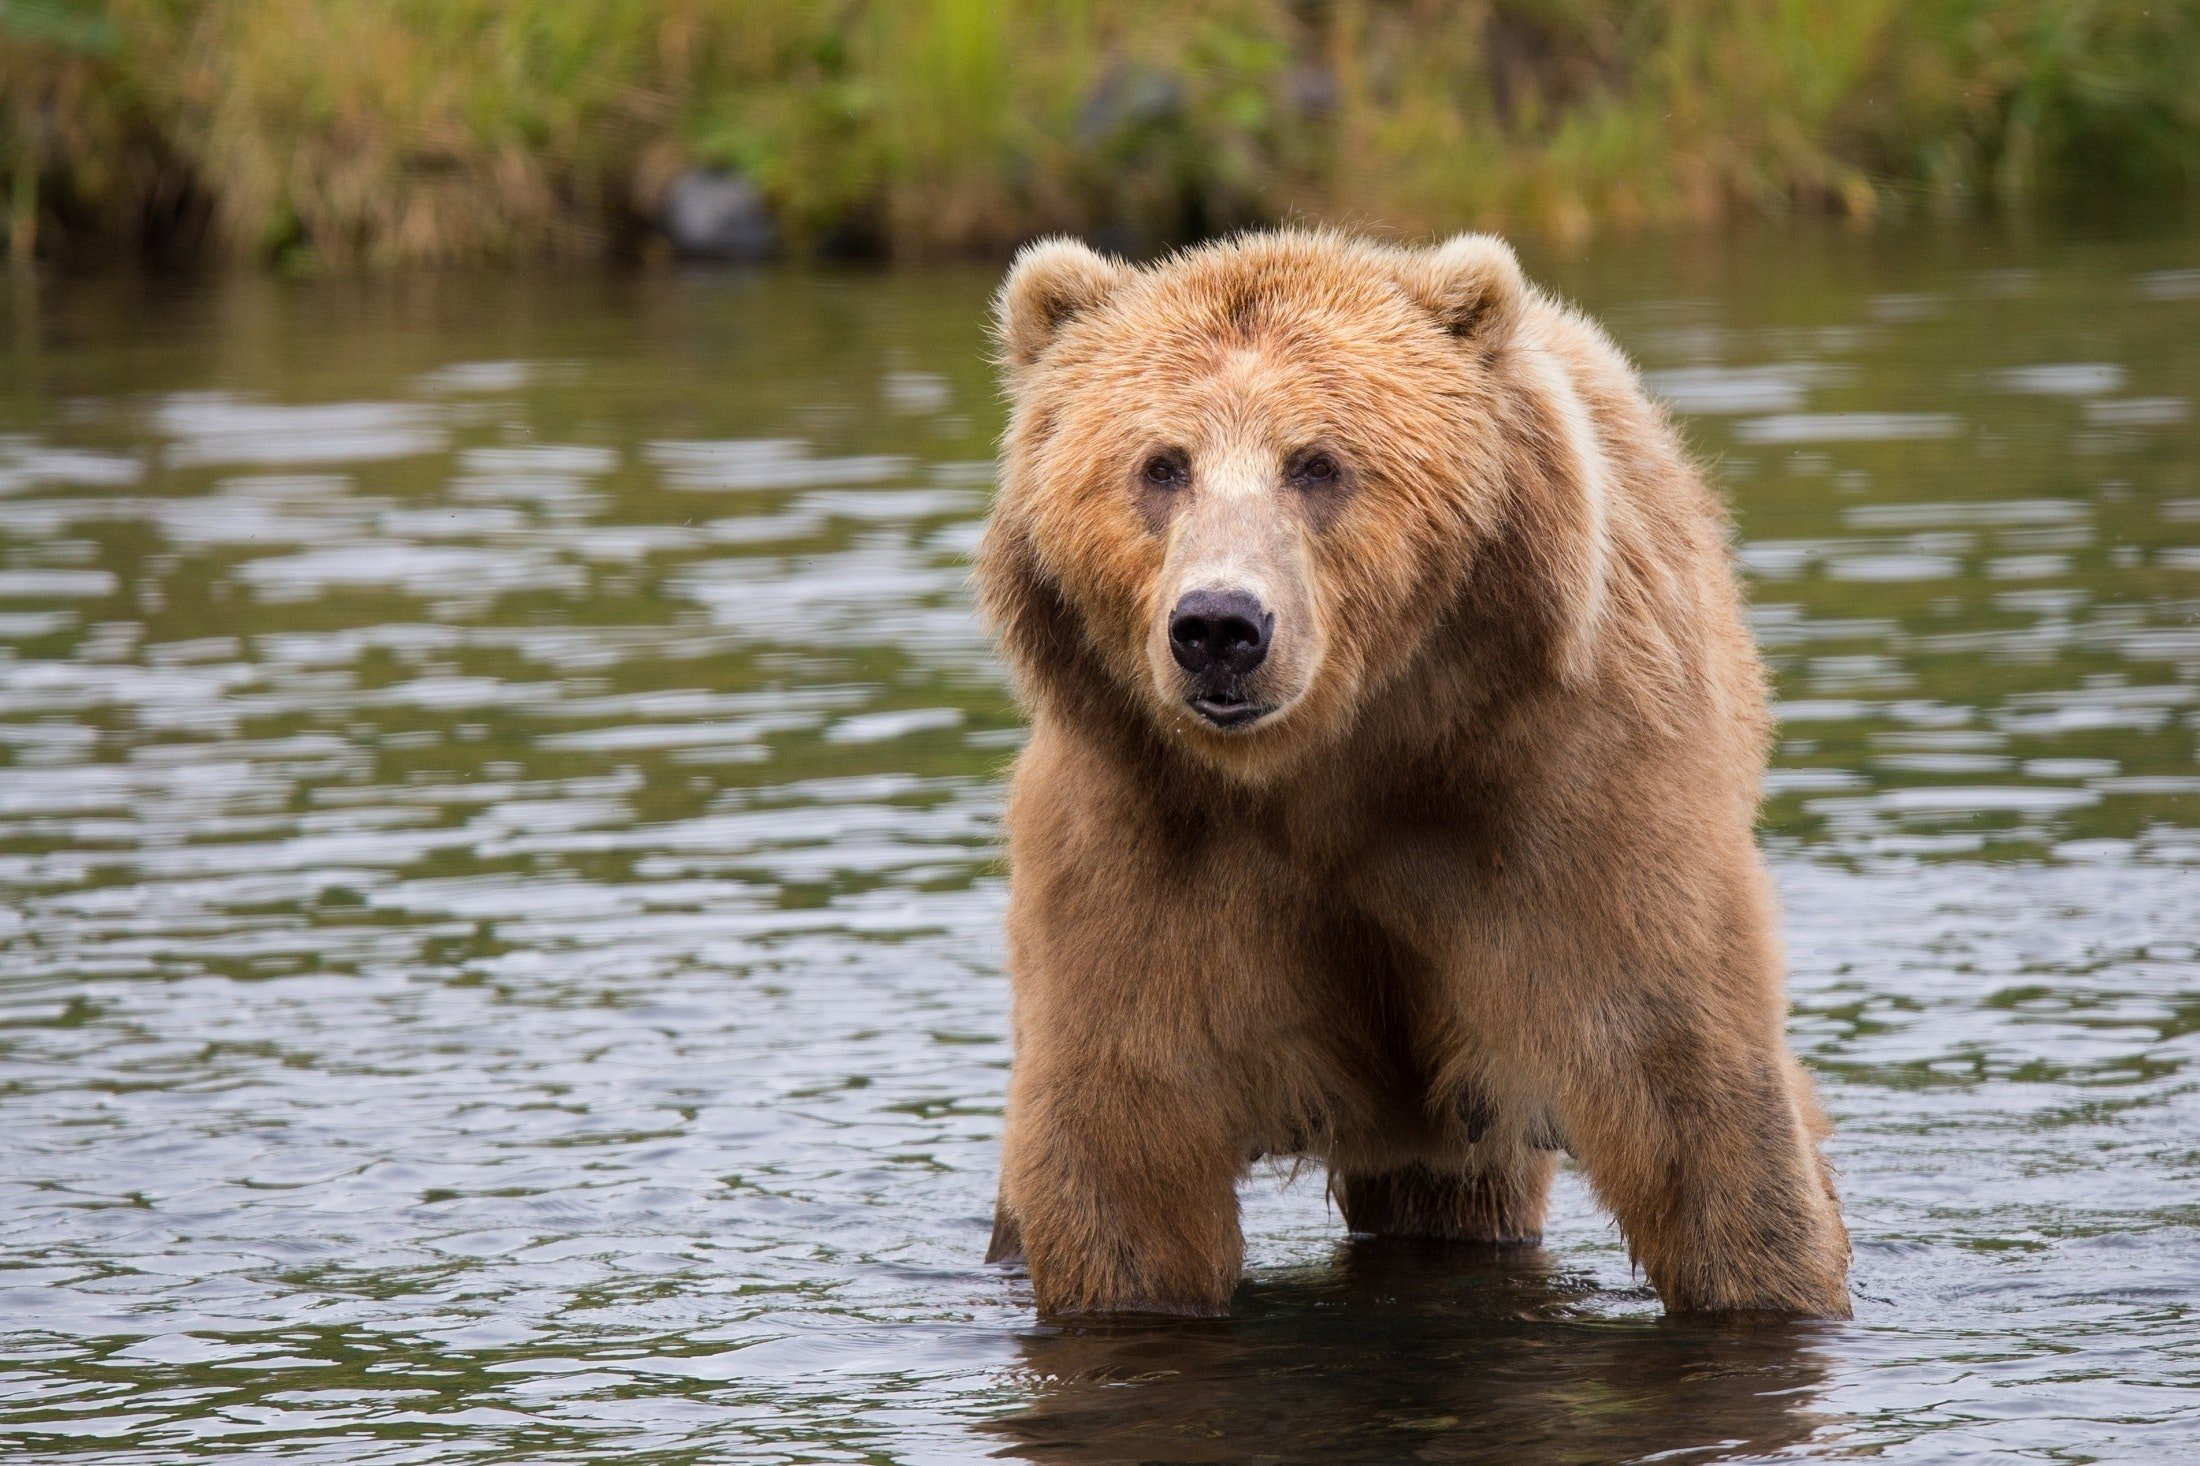 A big brown bear wades through the water next to the river's edge | Photo: Pexels/Pixabay